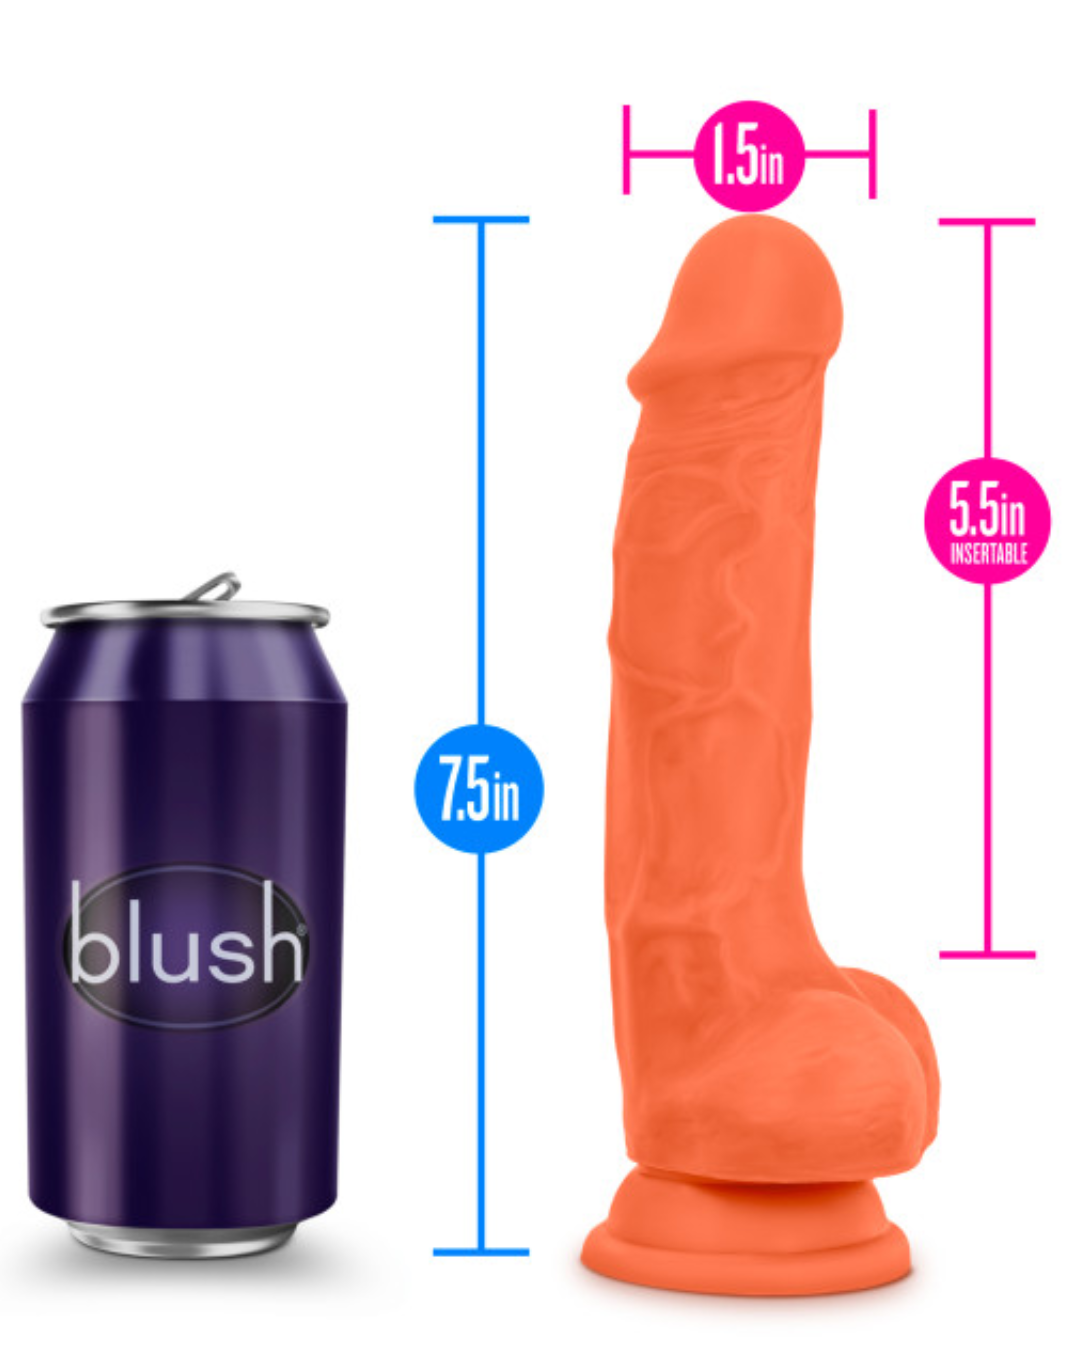 Neo Elite 7.5 Inch Dual Density Silicone Dildo by Blush - Neon Orange showing measurements